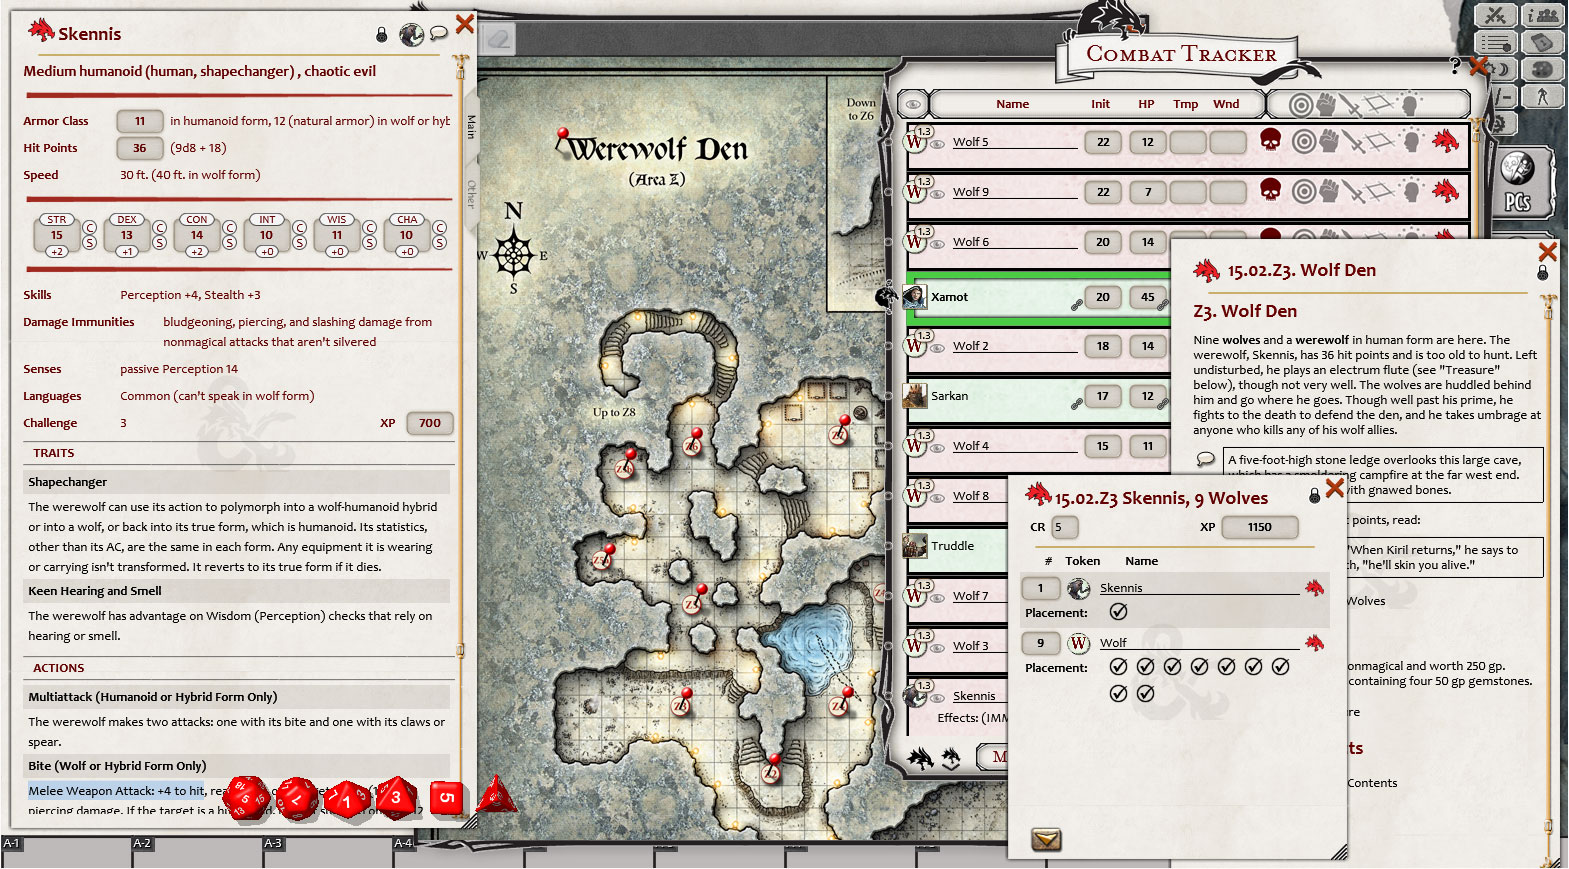 D&D Curse of Strahd for Fantasy Grounds